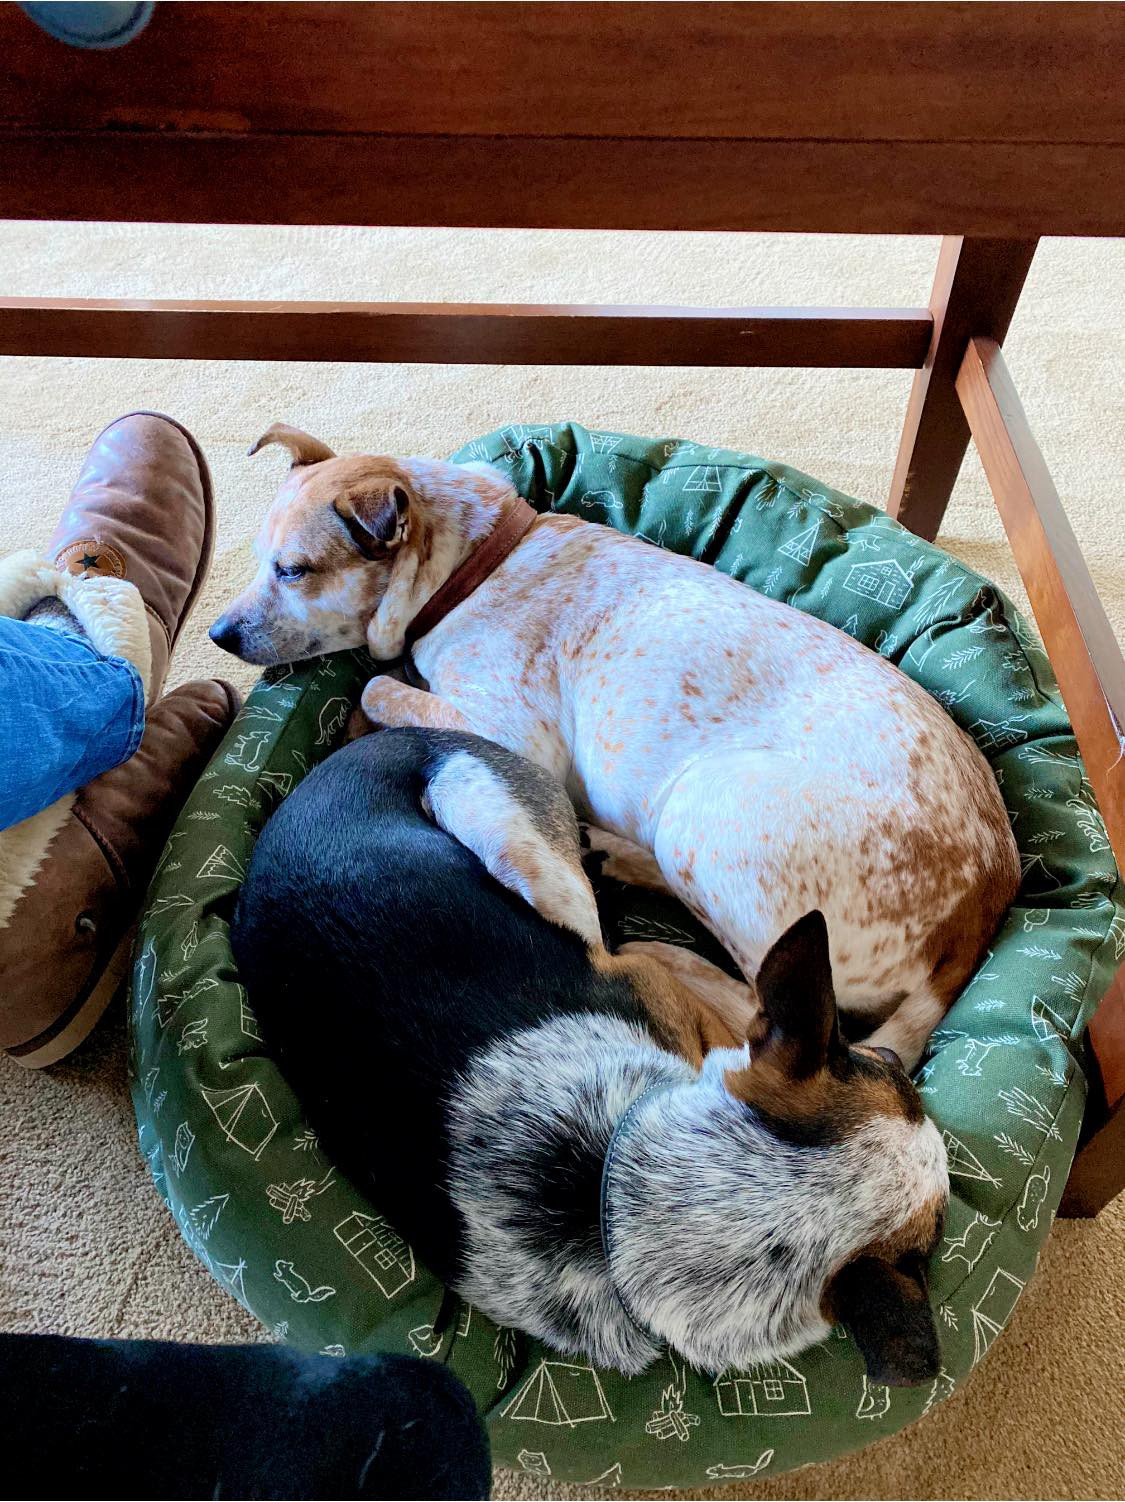 Two dogs snuggled together in a bed tucked under a desk.